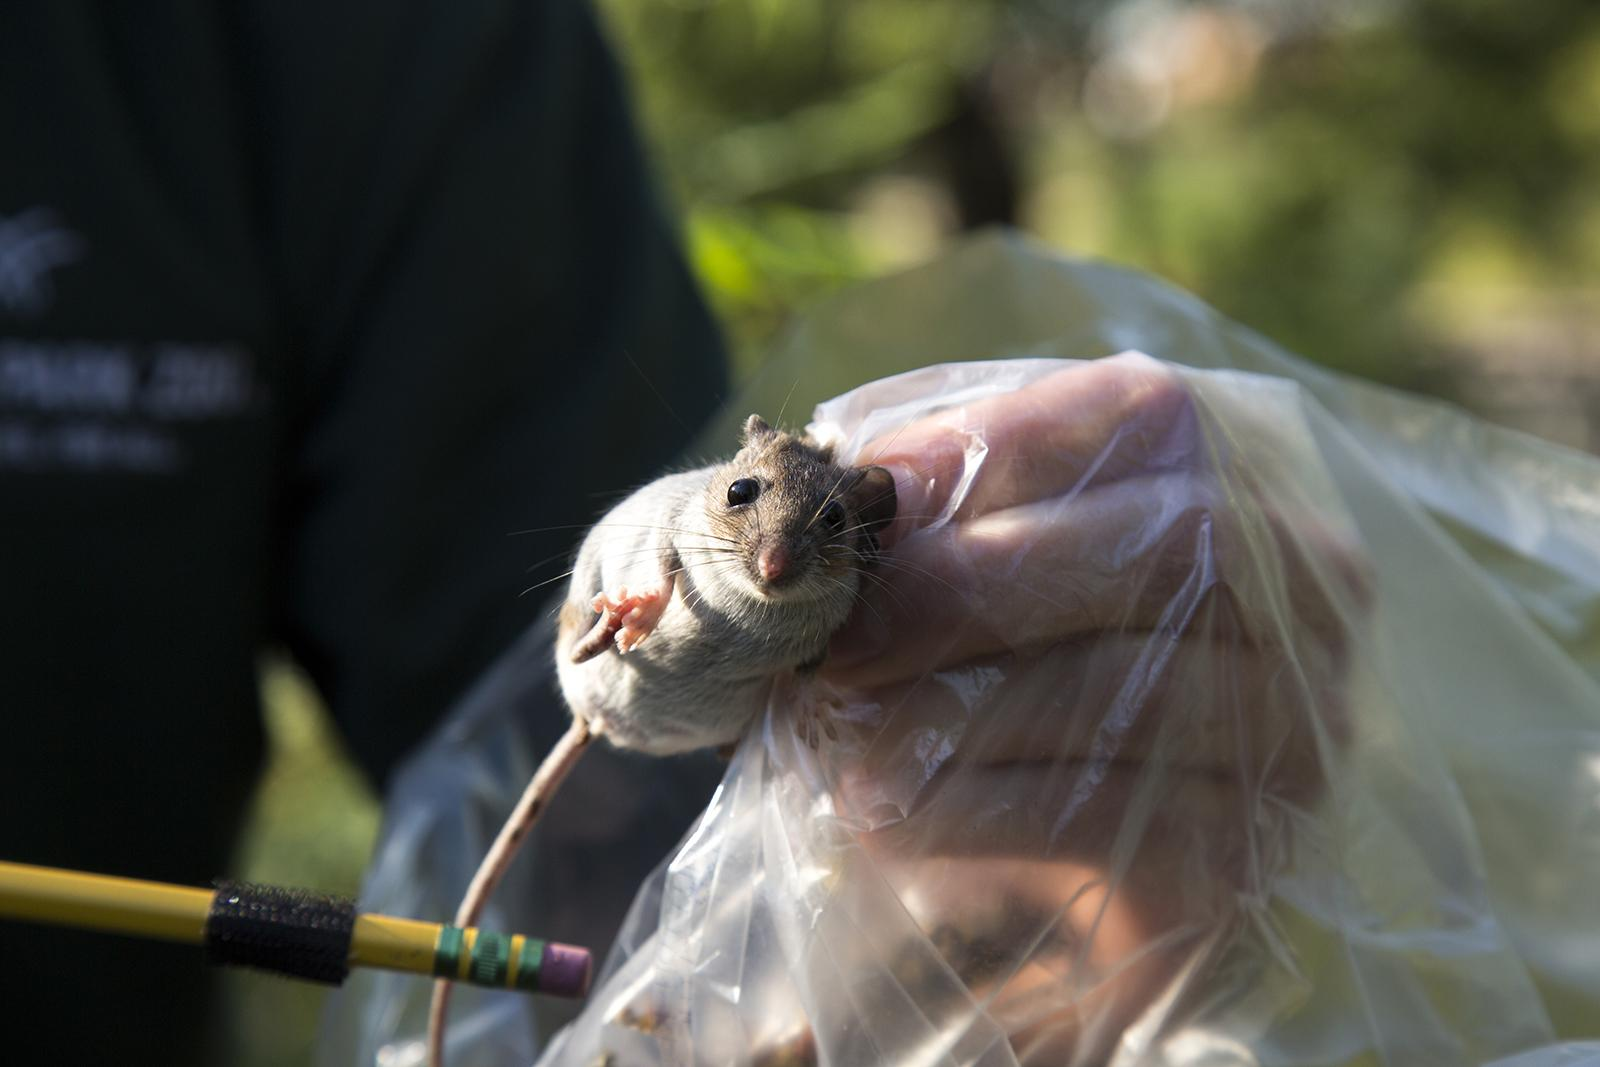 An ongoing Lincoln Park Zoo study aims to examine how communities of of mice and other small mammals fare in Chicago compared to its suburbs. (Jillian Braun / Lincoln Park Zoo)